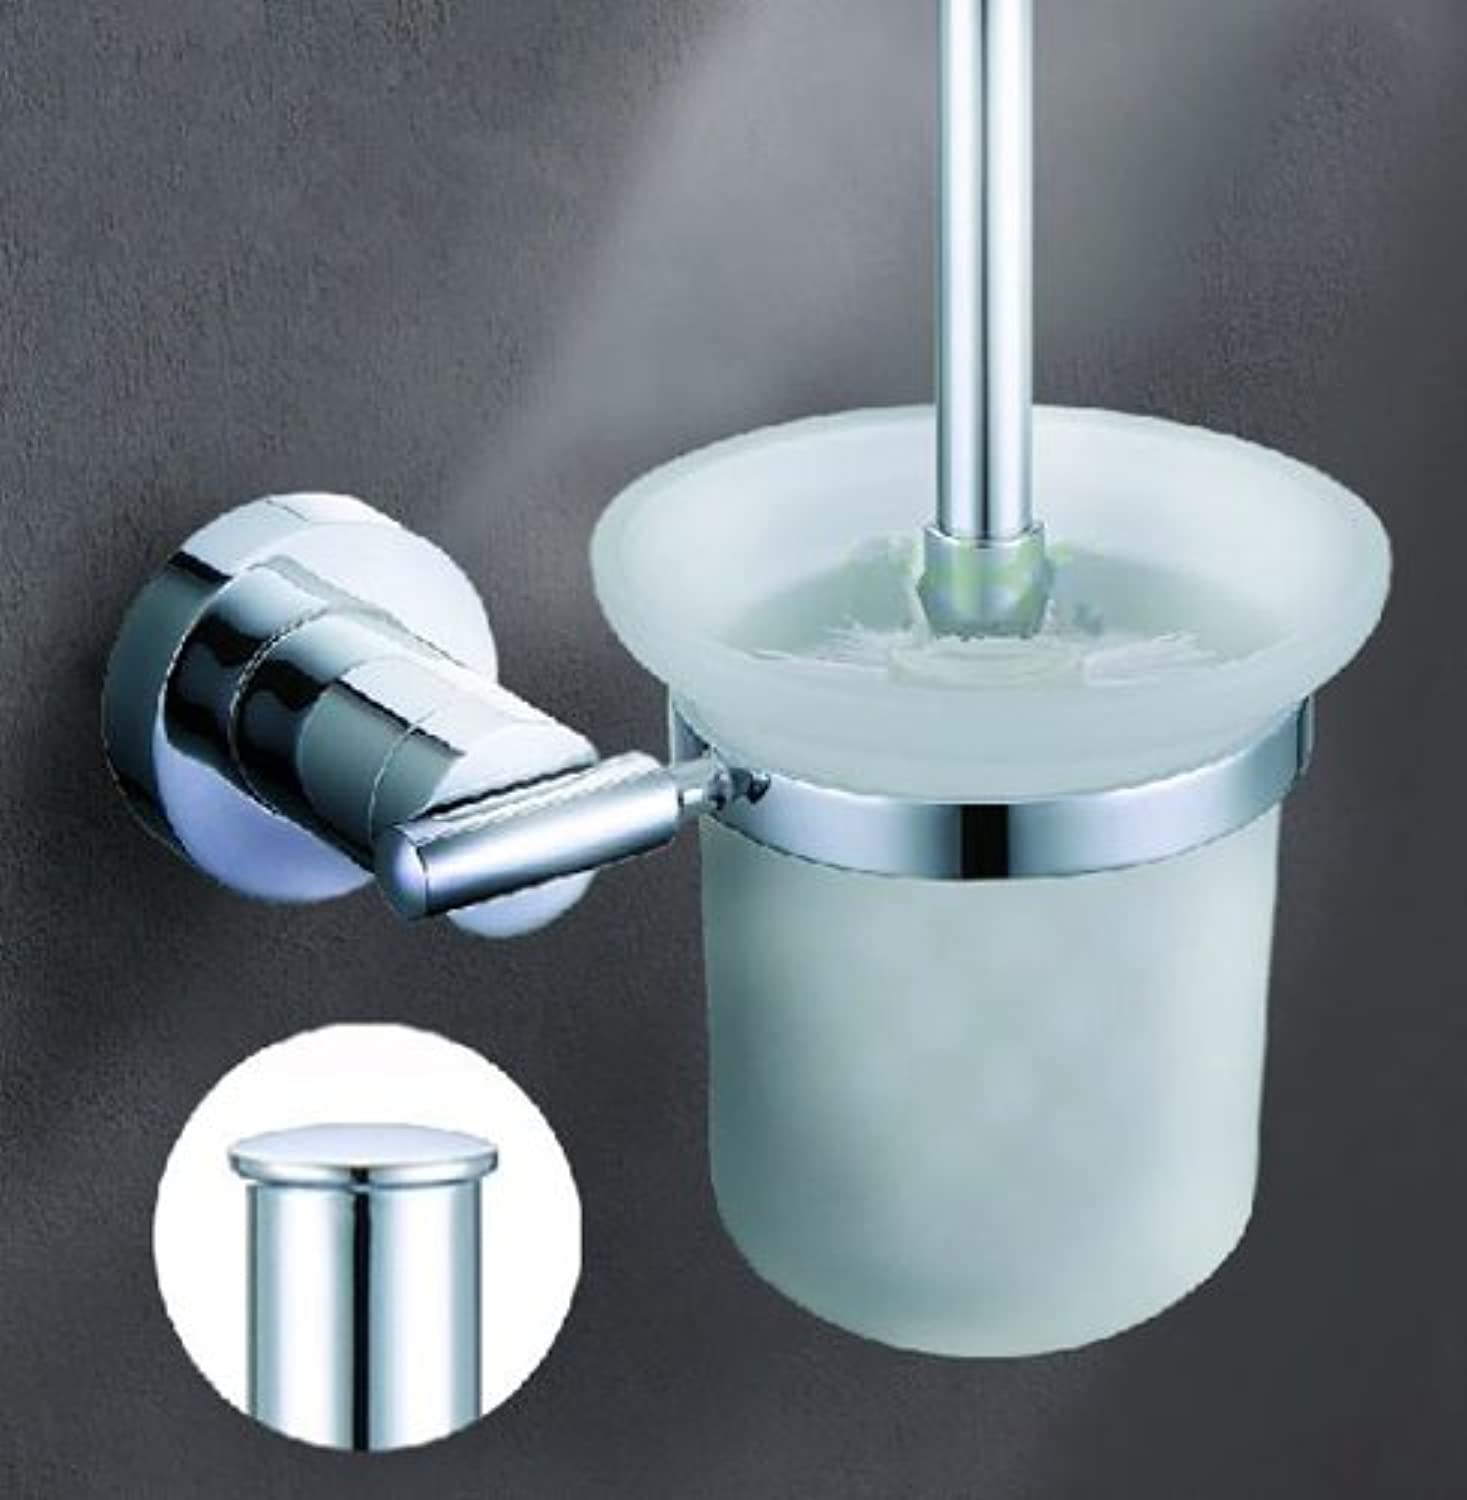 TACCY Bathroom Toilet Brush with Frosted Glass Cup and Brass Holder in Polished Chrome Finish  MT99C